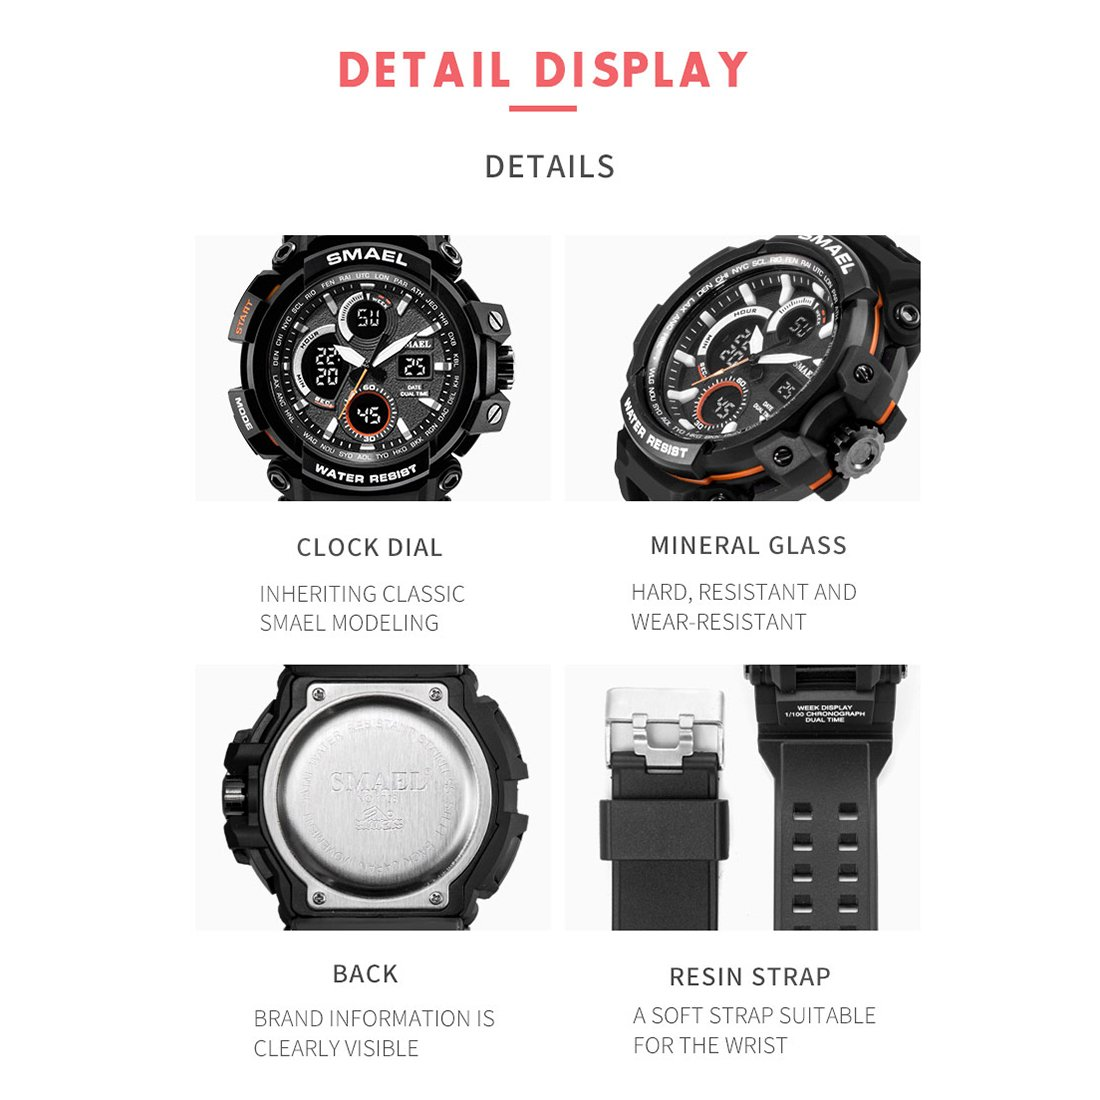 SMAEL Mens Sports Watch, Fashion New Design Watch Analog Digital Watch Sports Wristwatch Military Watch (Black): Amazon.es: Relojes